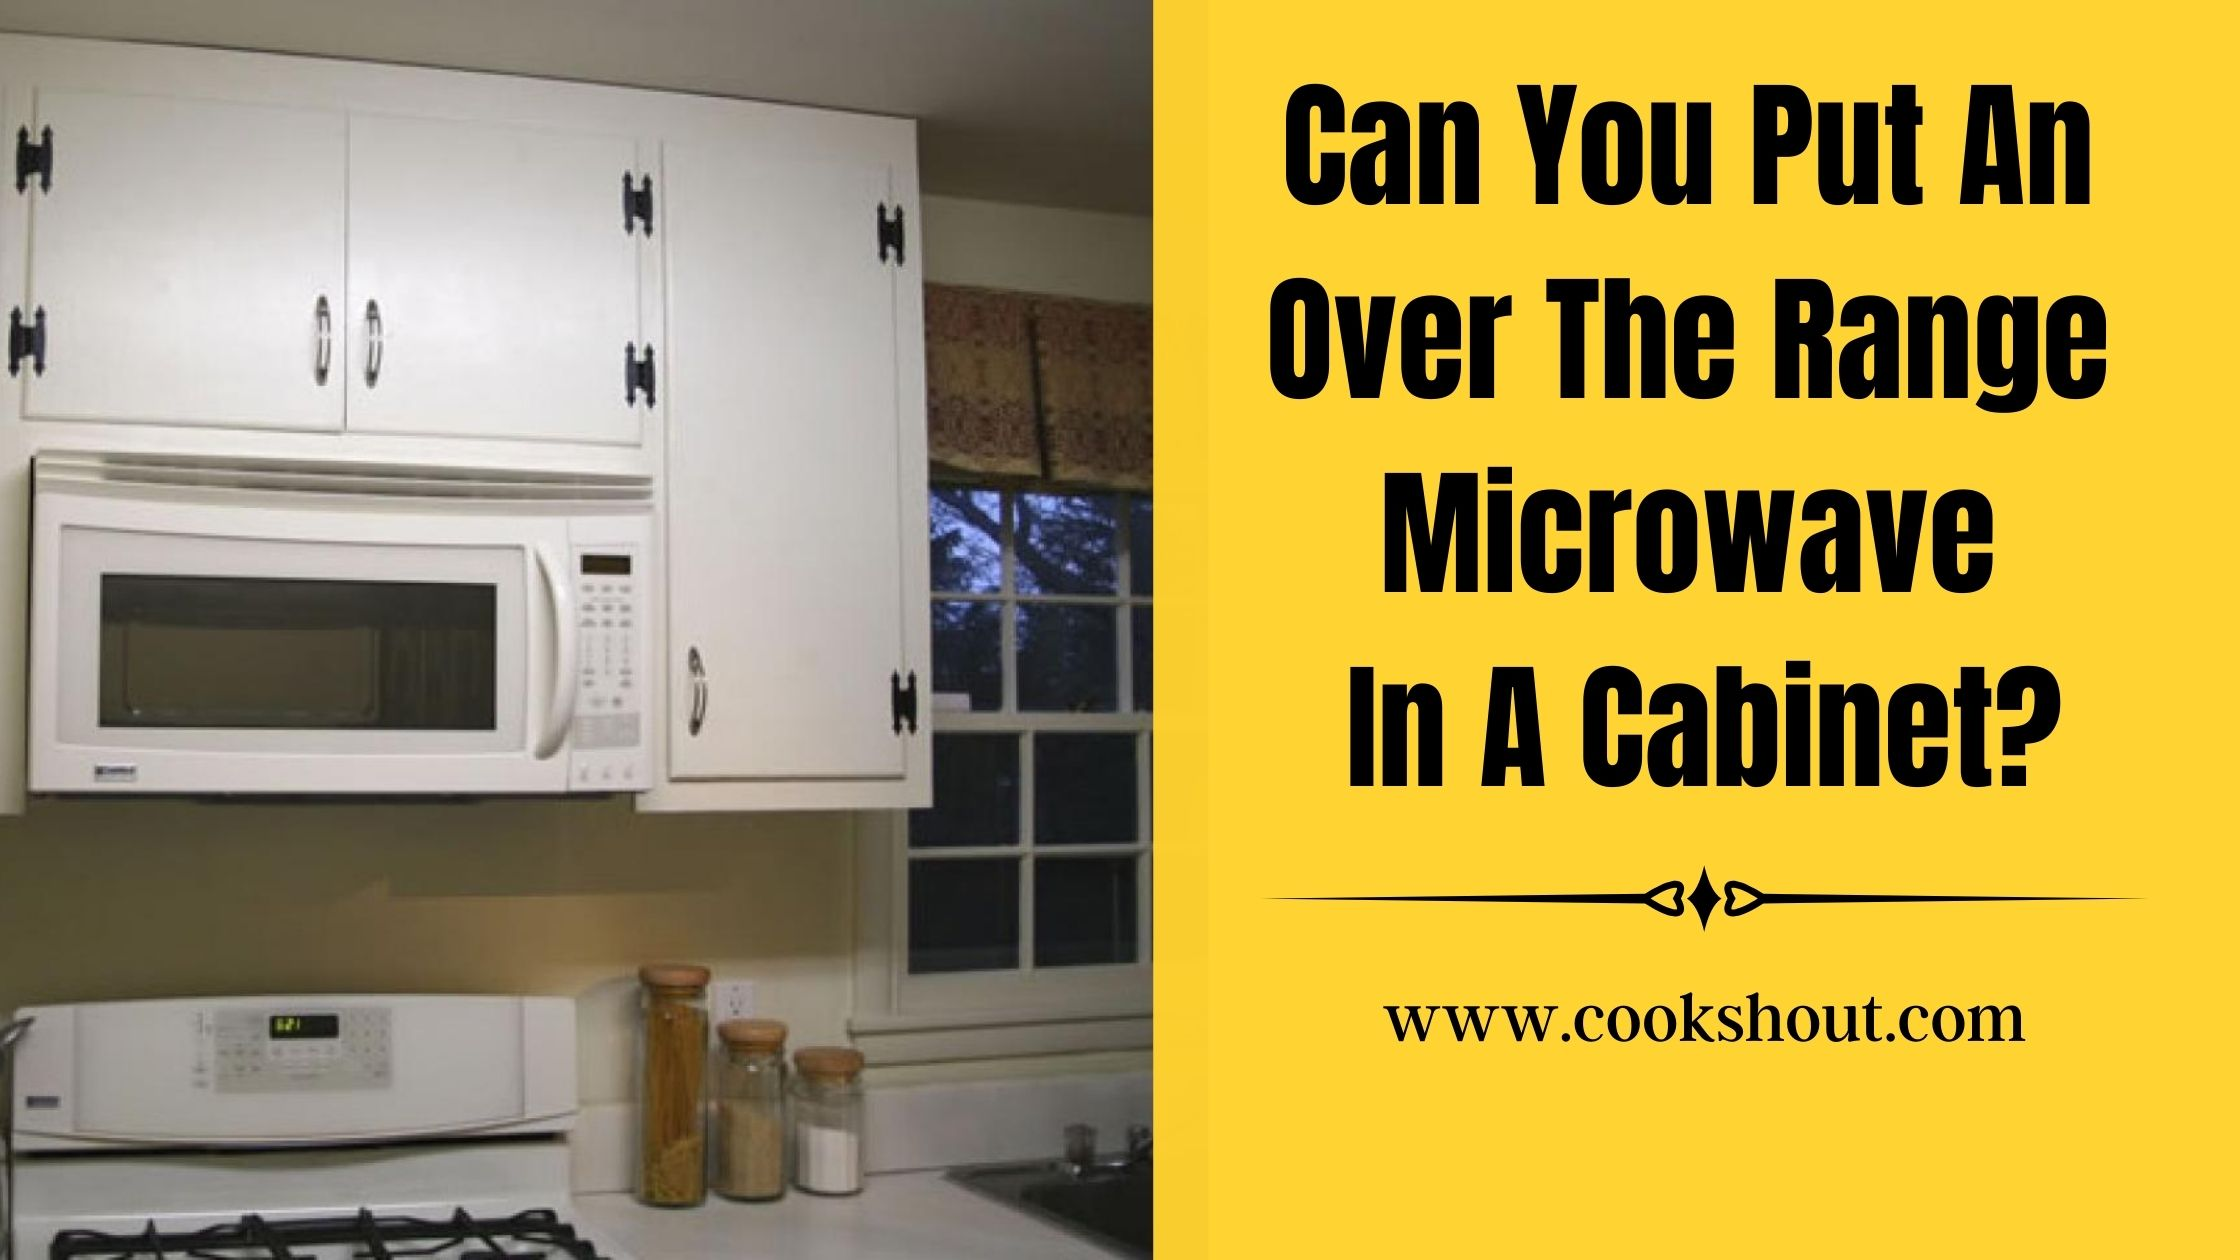 Can You Put An Over The Range Microwave In A Cabinet